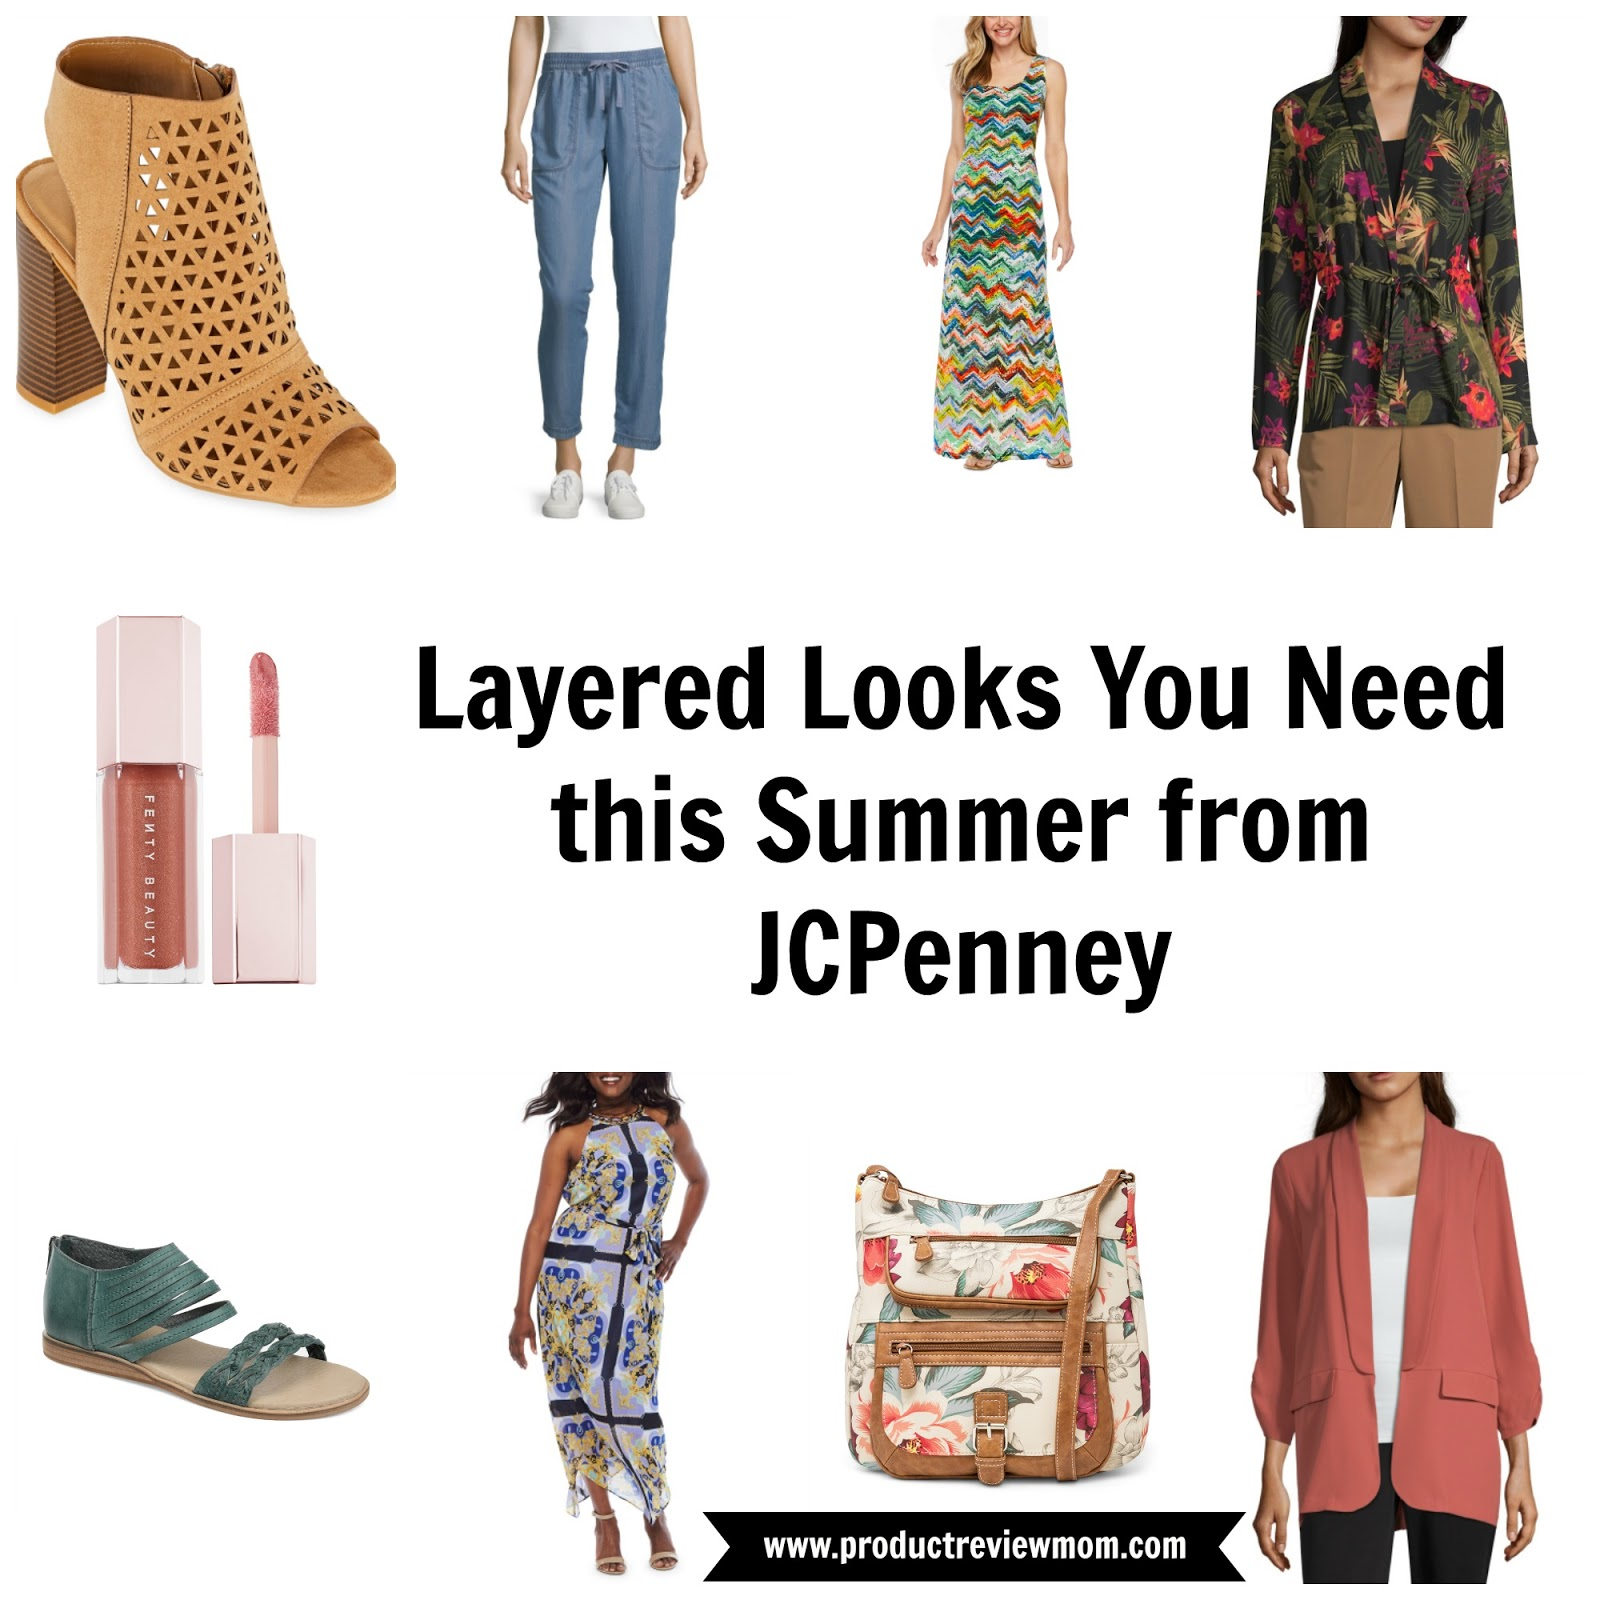 Layered Looks You Need this Summer from JCPenney